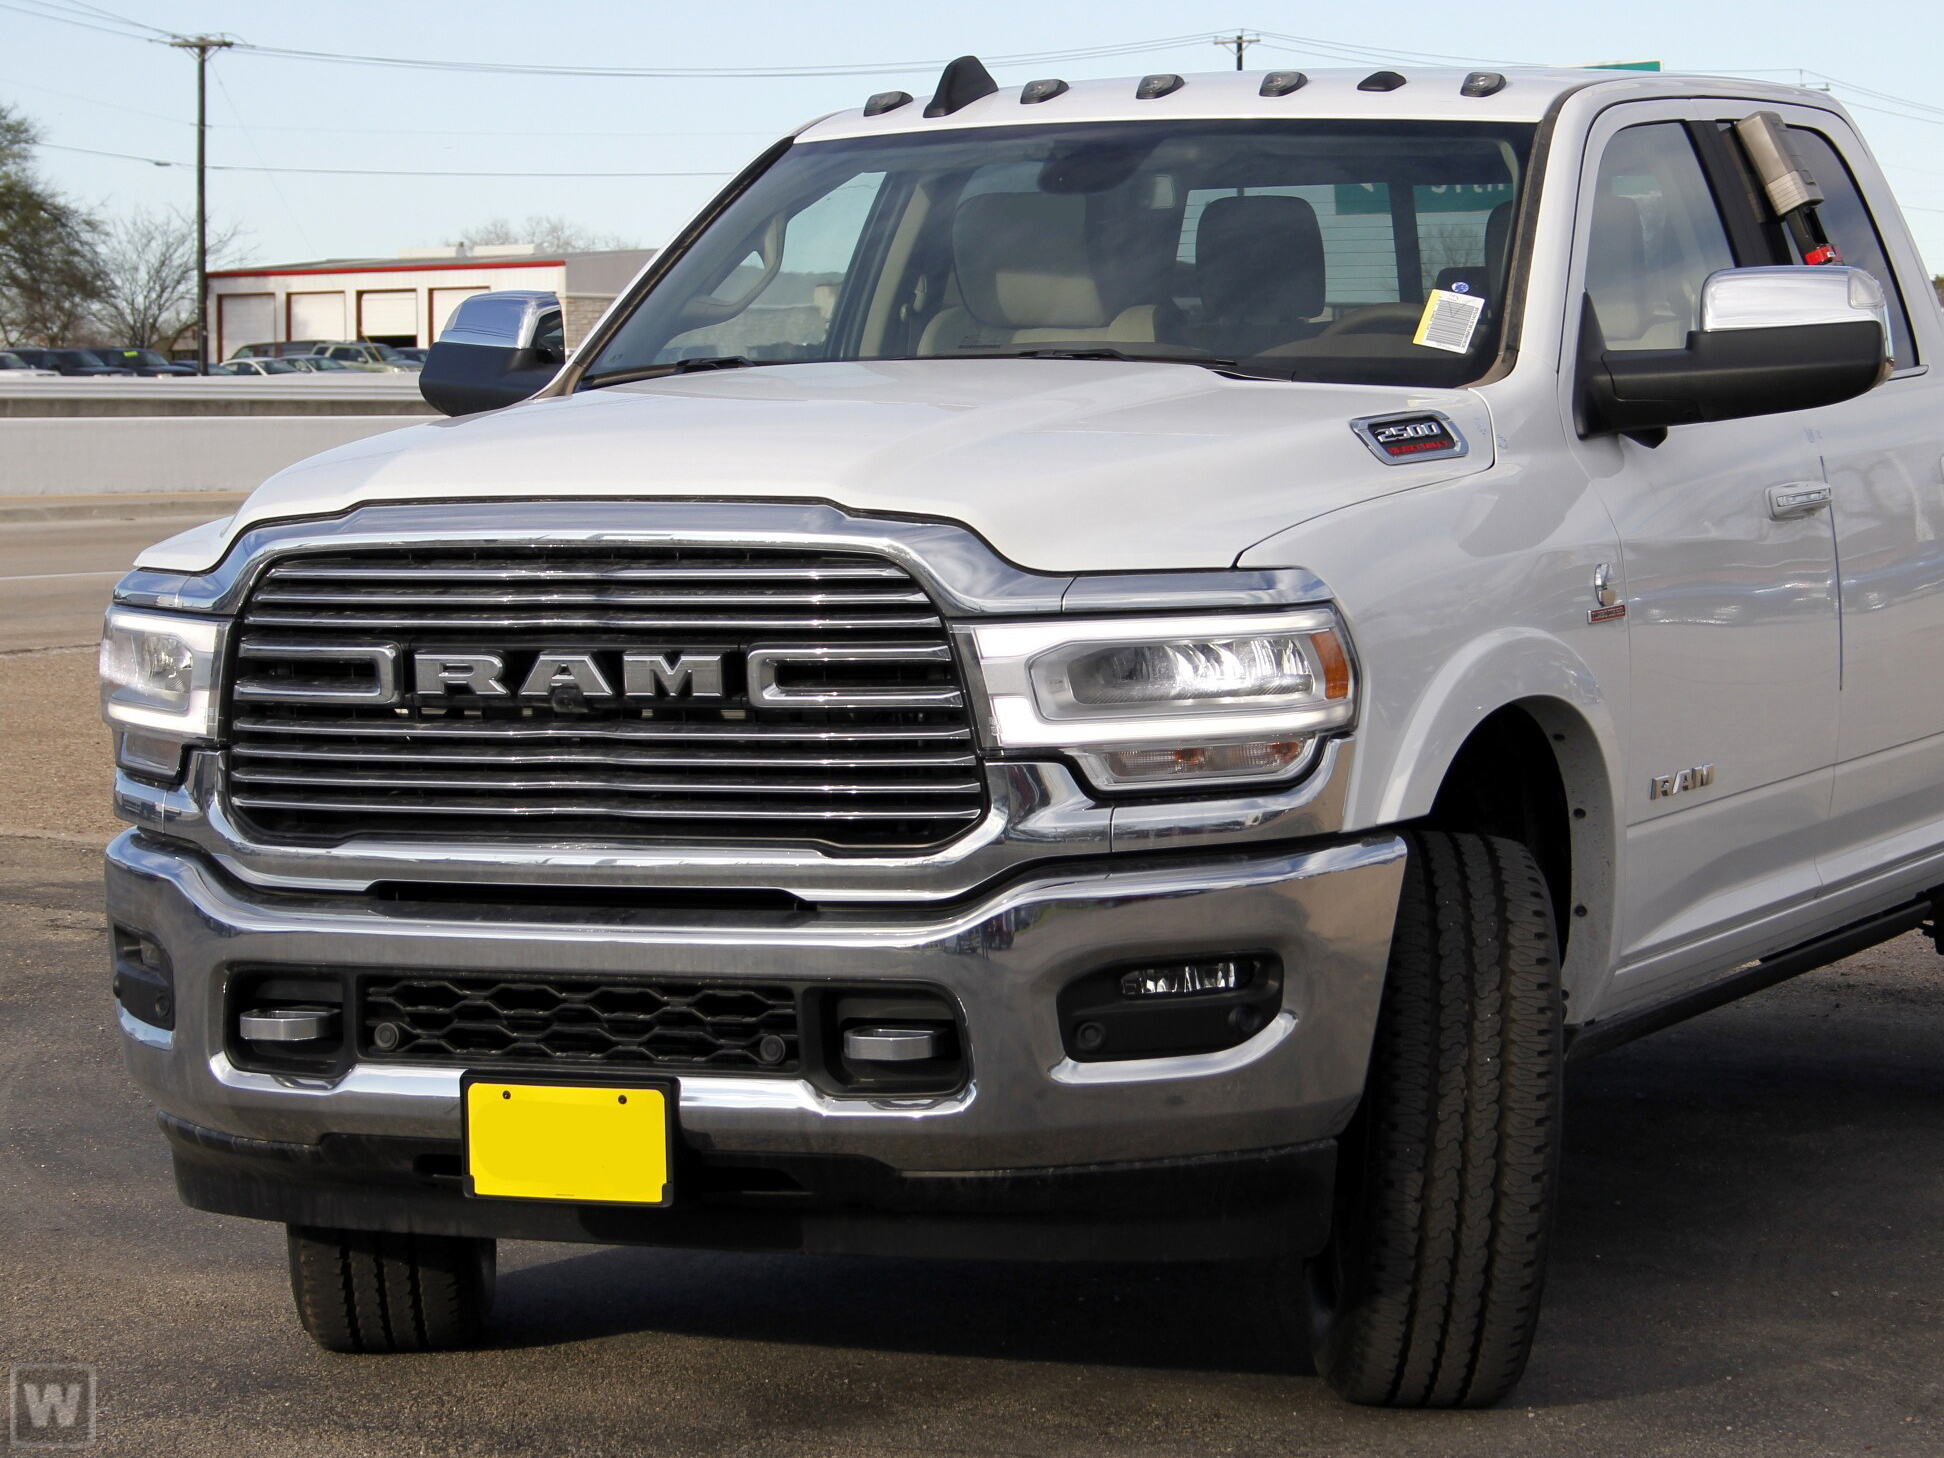 2020 Ram 2500 Crew Cab 4x4, Pickup #235345 - photo 1